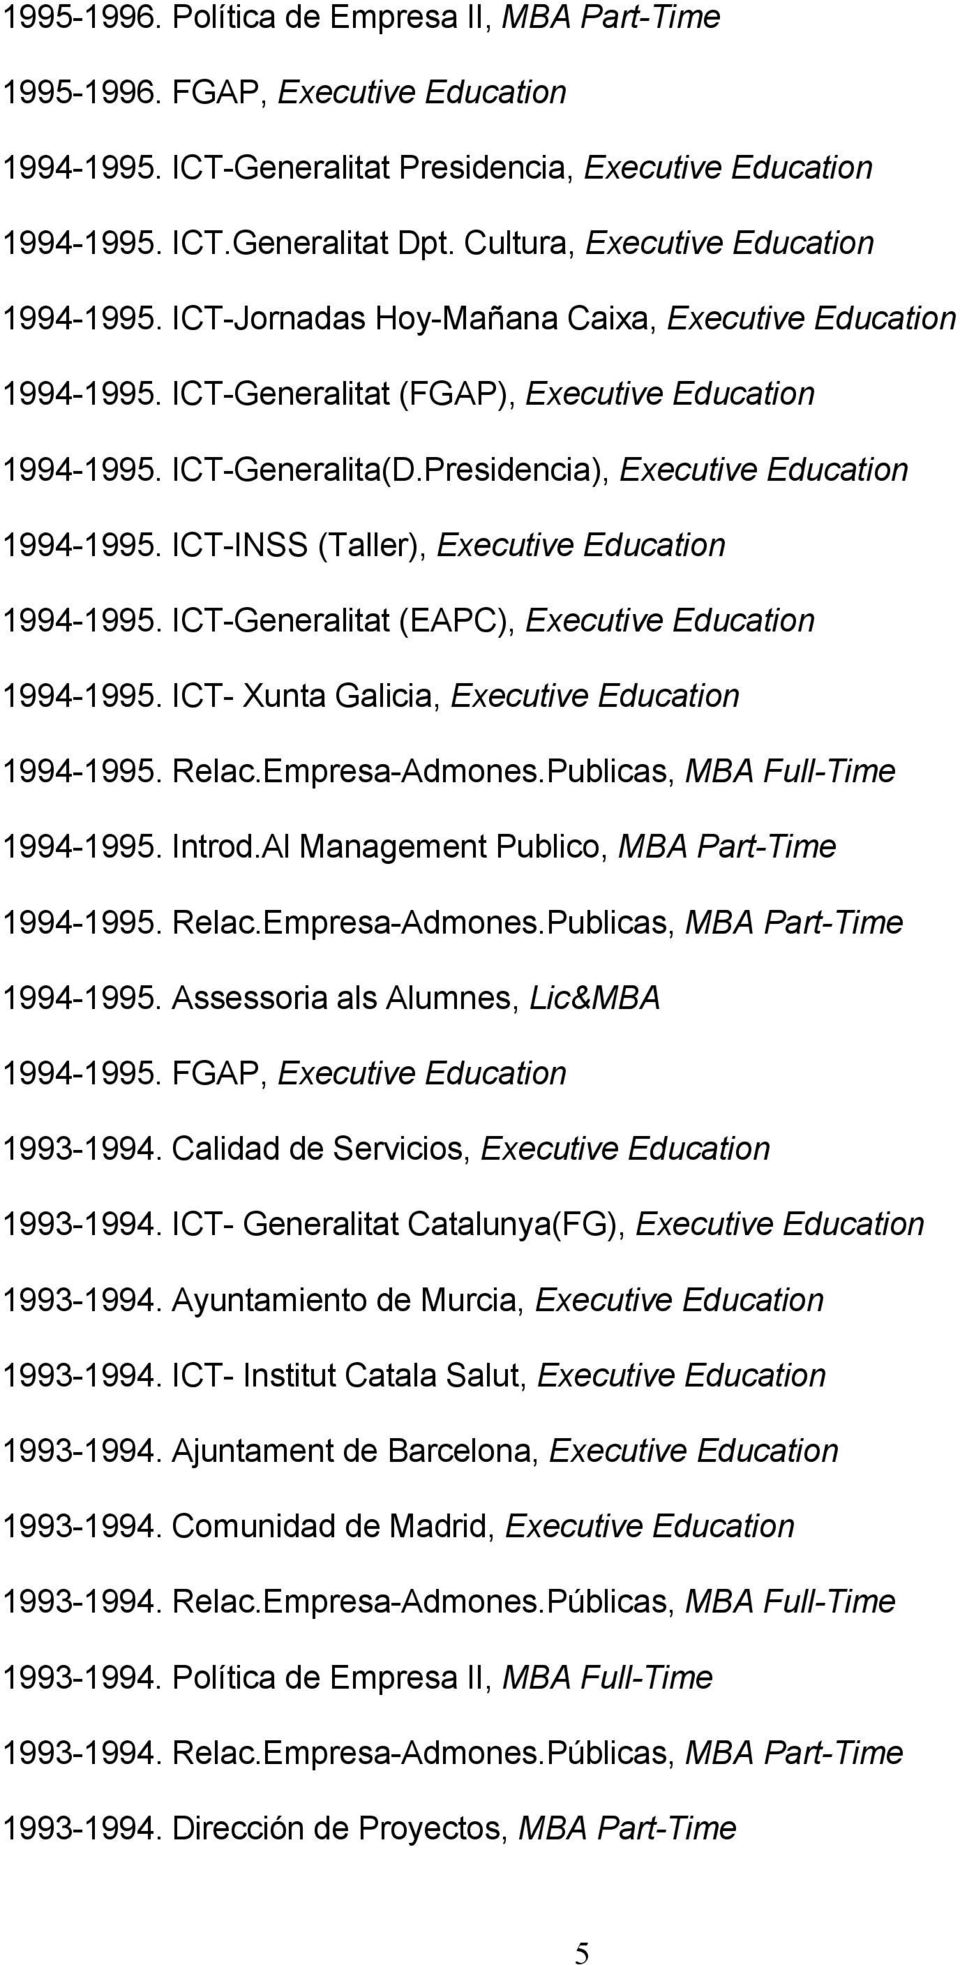 Presidencia), Executive Education 1994-1995. ICT-INSS (Taller), Executive Education 1994-1995. ICT-Generalitat (EAPC), Executive Education 1994-1995. ICT- Xunta Galicia, Executive Education 1994-1995.